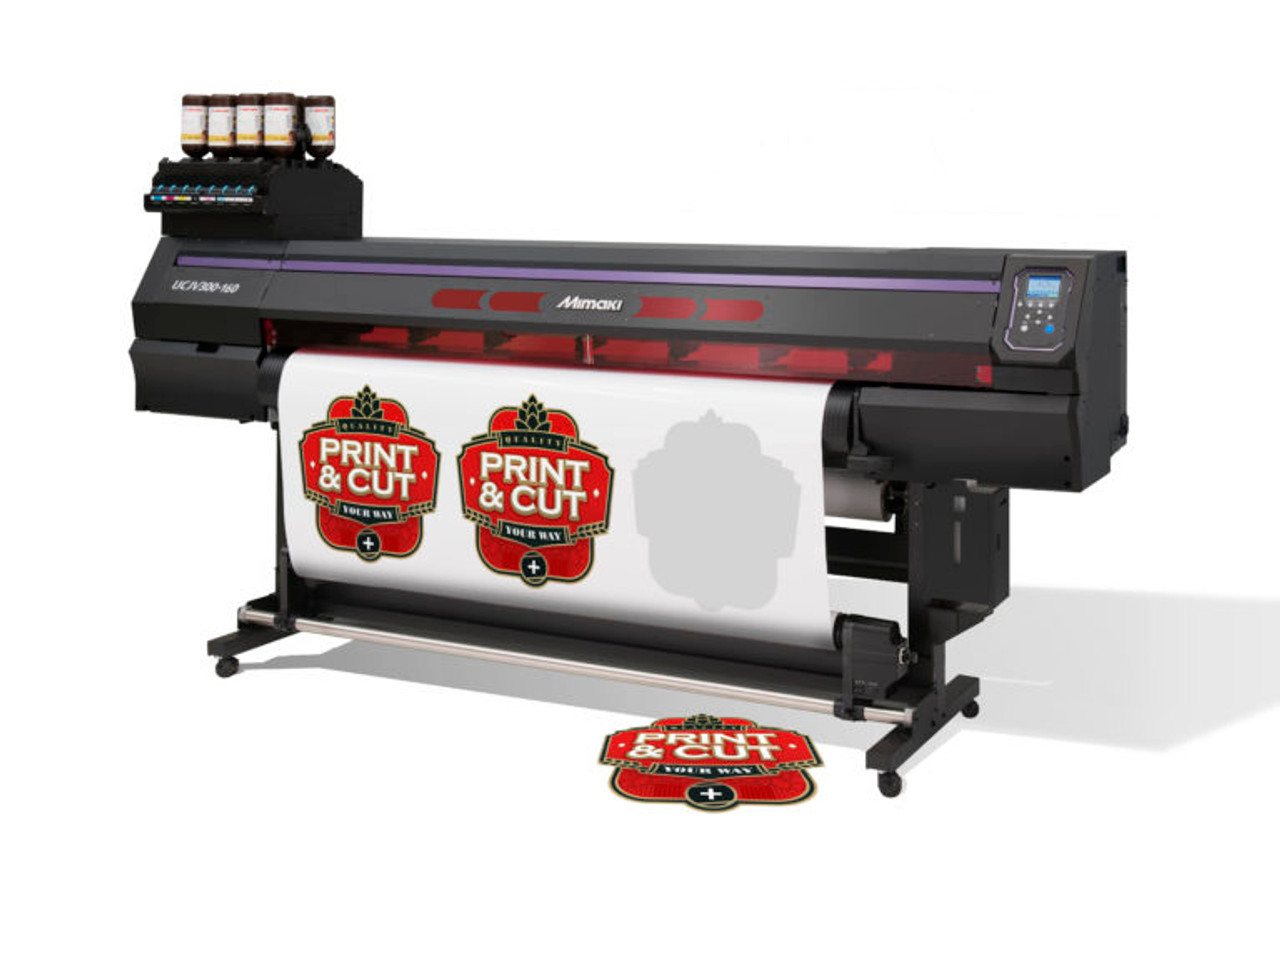 UCJV300-107 UV-LED Roll to Roll Cut-and-Print